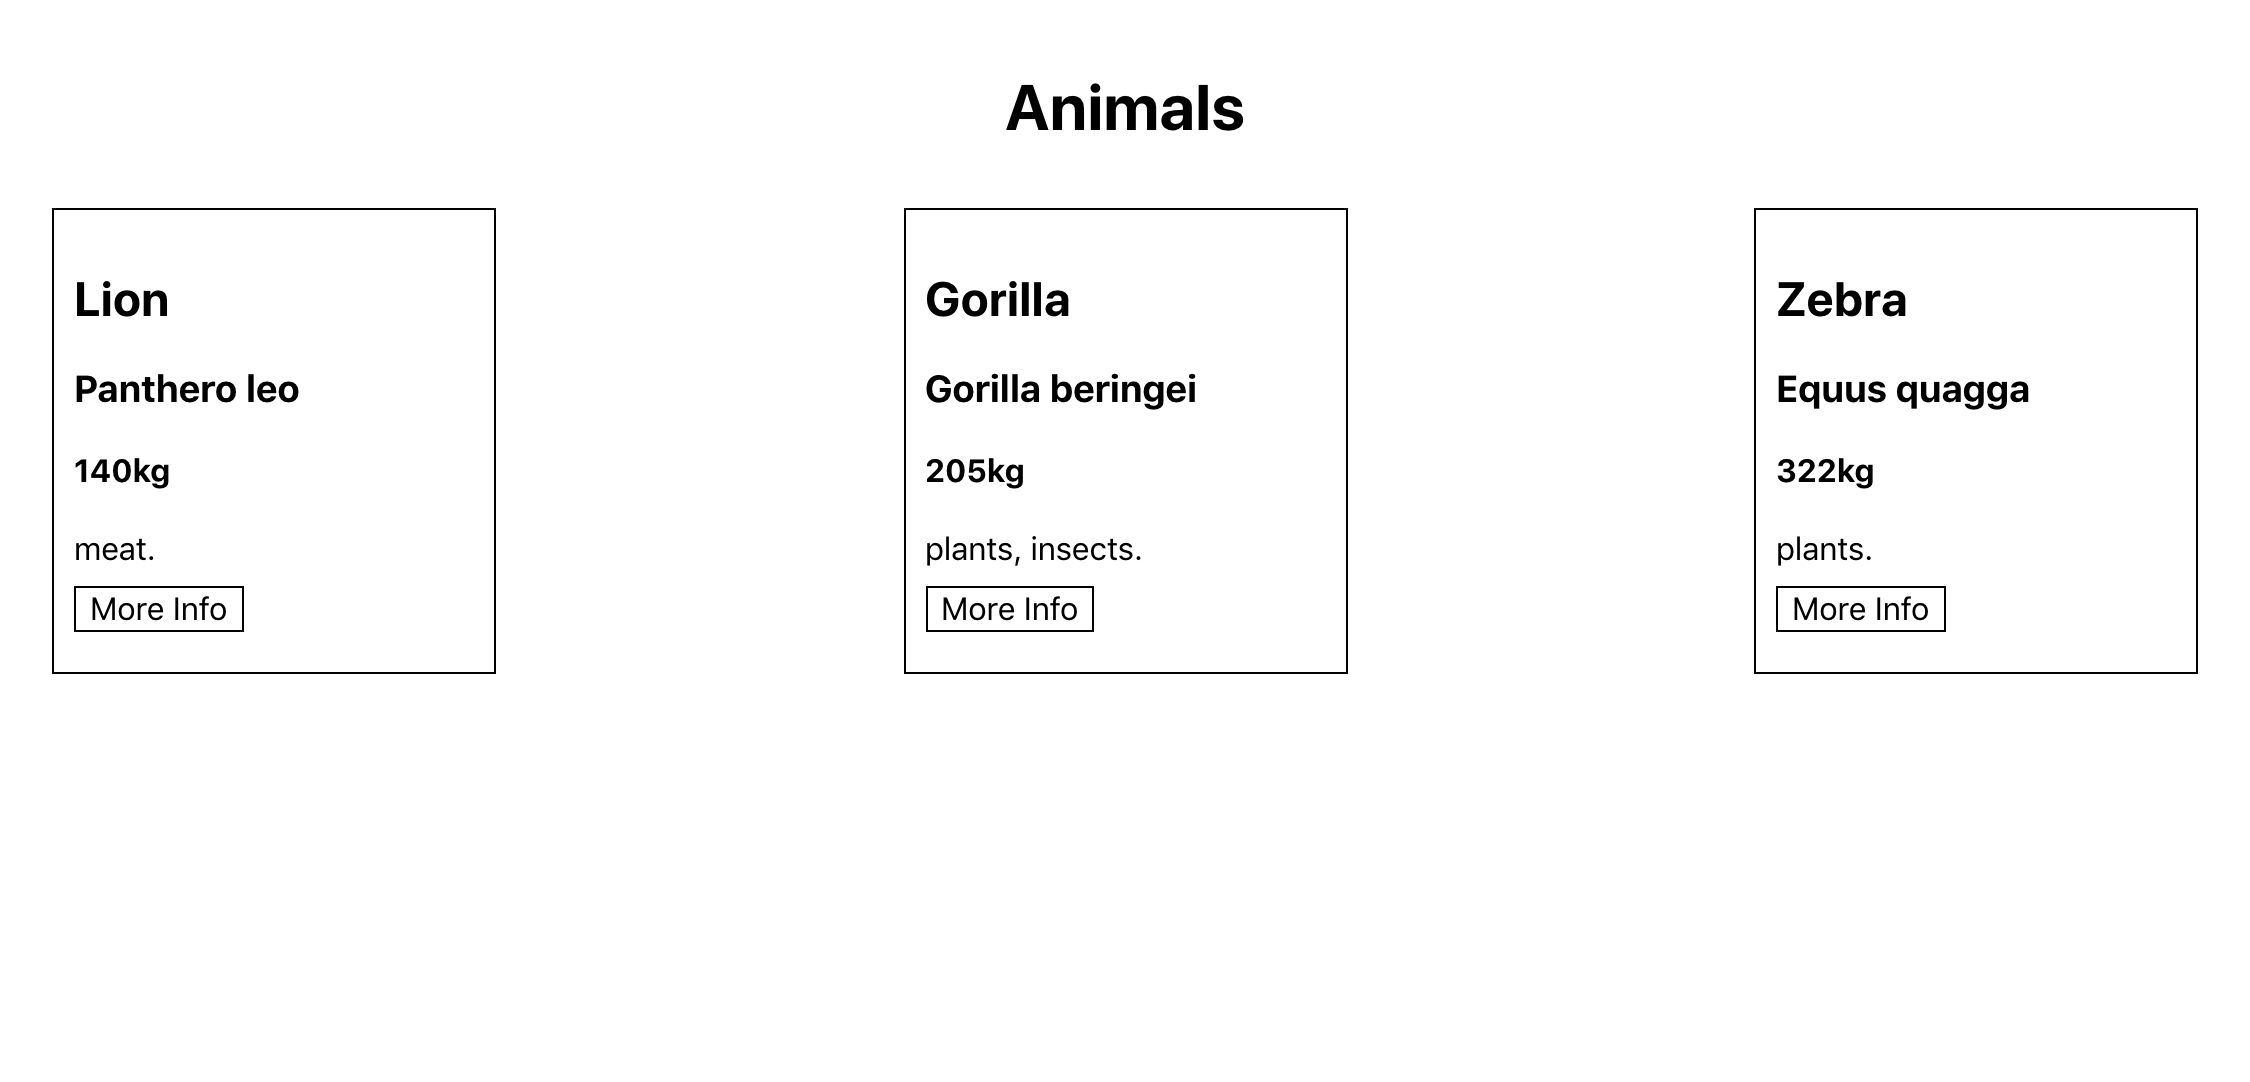 React project with styled animal cards